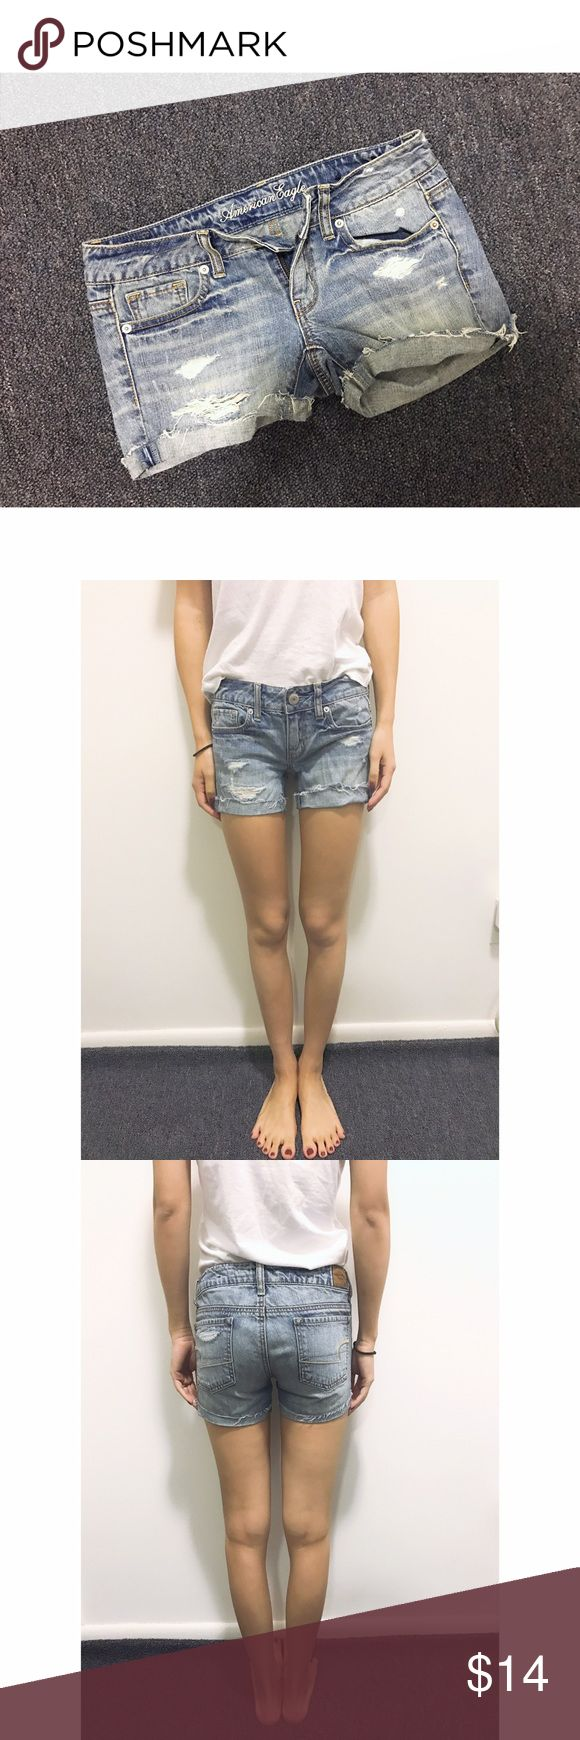 American Eagle Outfitters Shorts American Eagle Outfitter Short (Only worn it once, looks brand new) Size :2 American Eagle Outfitters Shorts